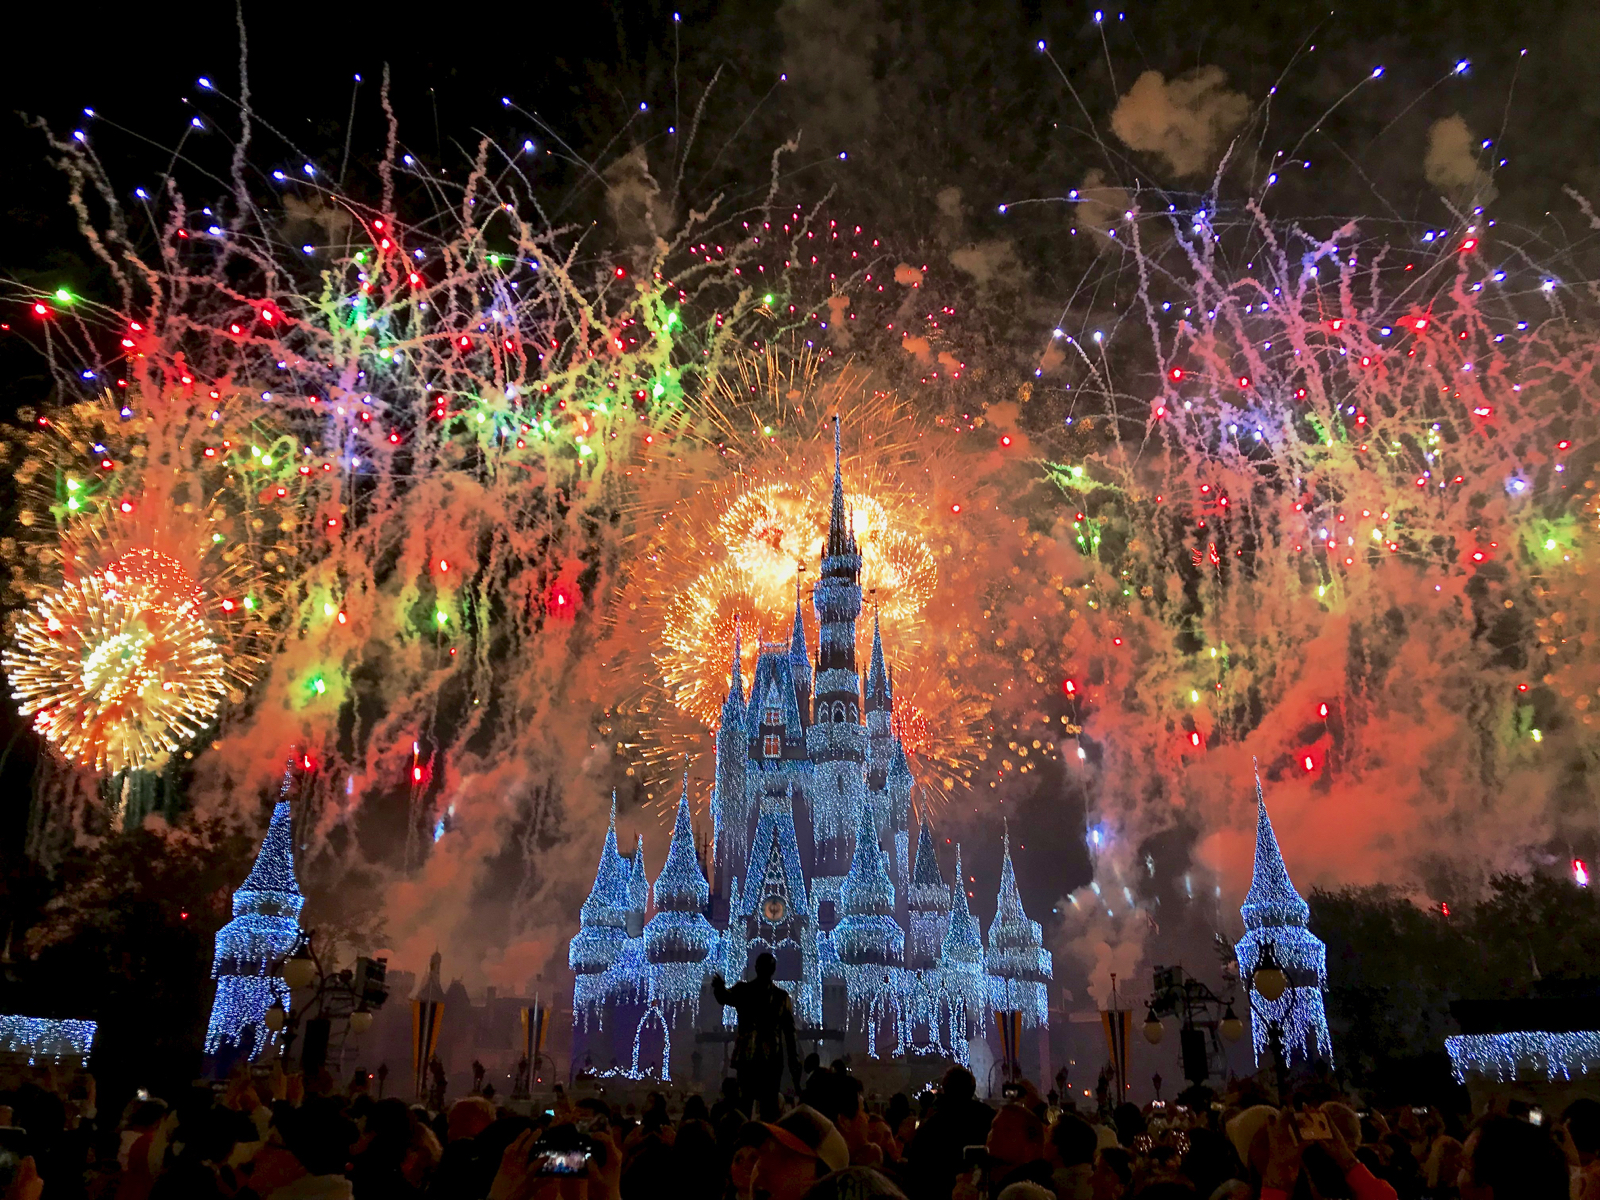 Fantasy in the Sky fireworks were presented four times on December 30-31 e70b44f70